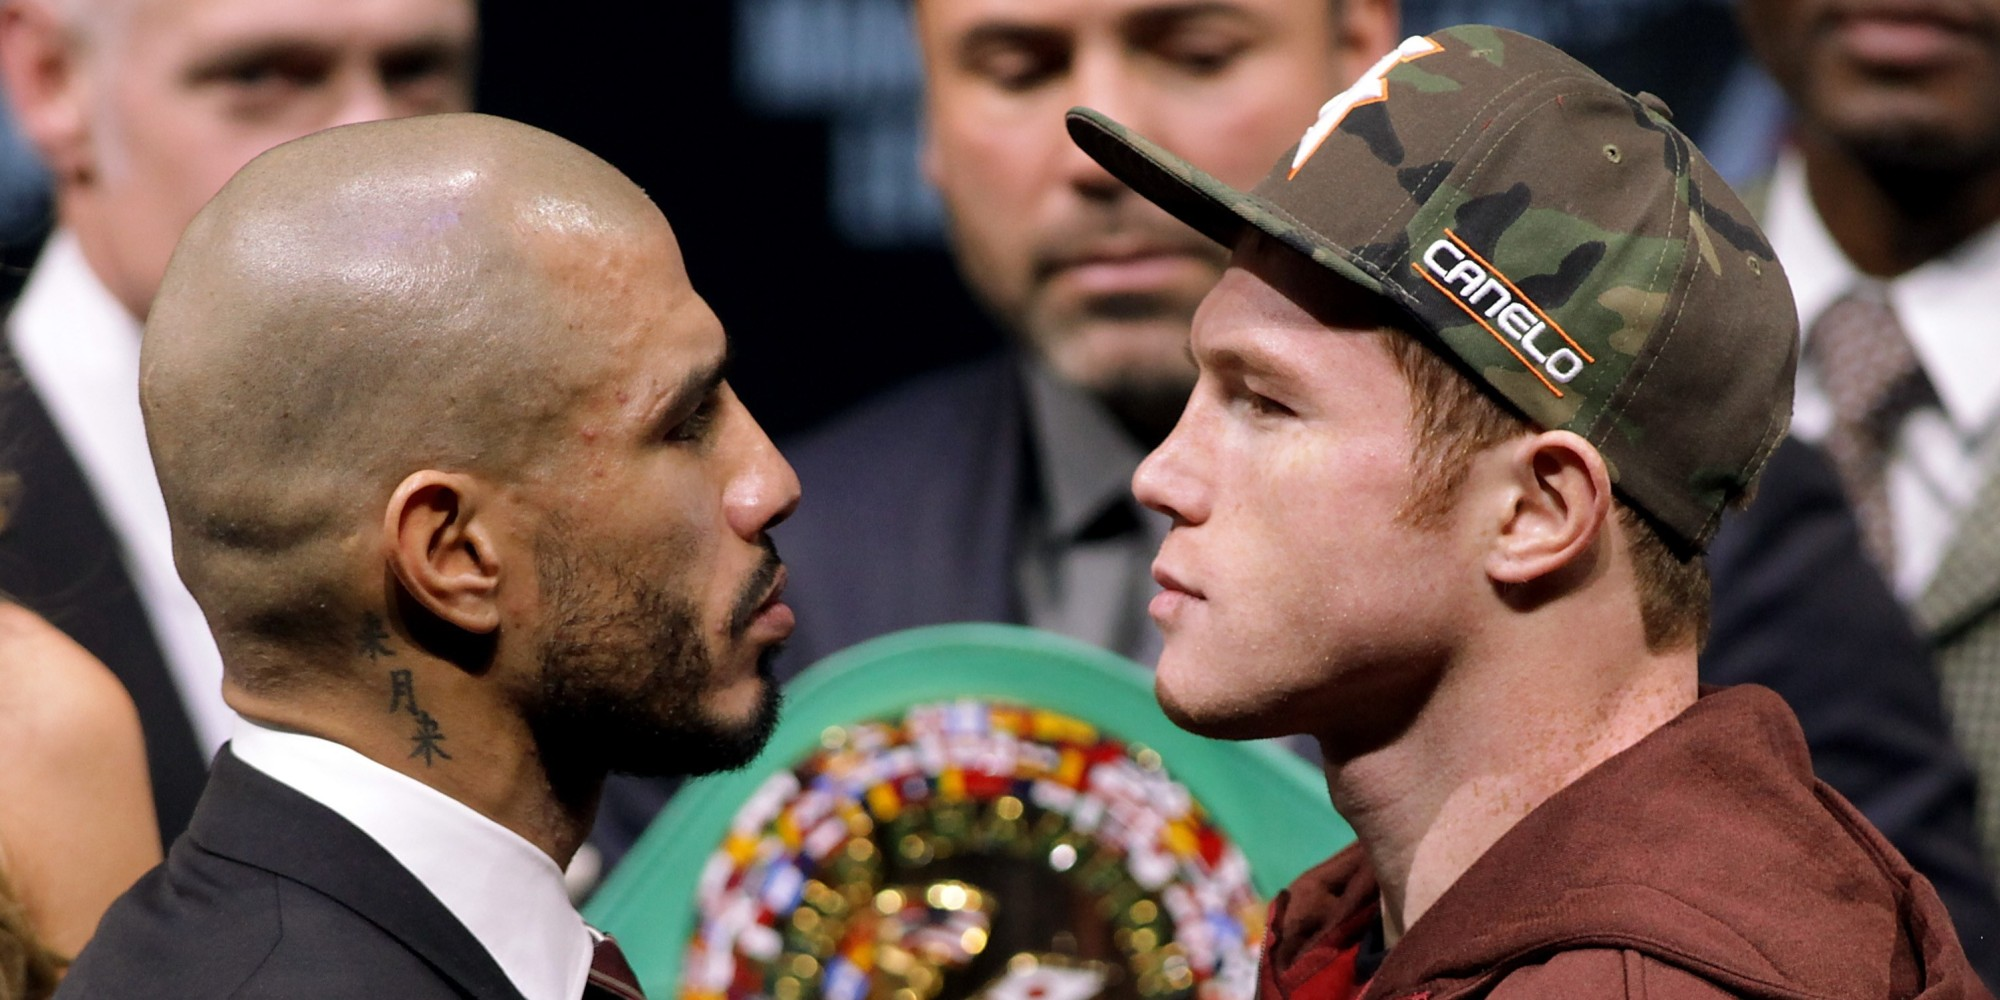 5 Facts You Might Not Know About Miguel Cotto and Canelo Álvarez